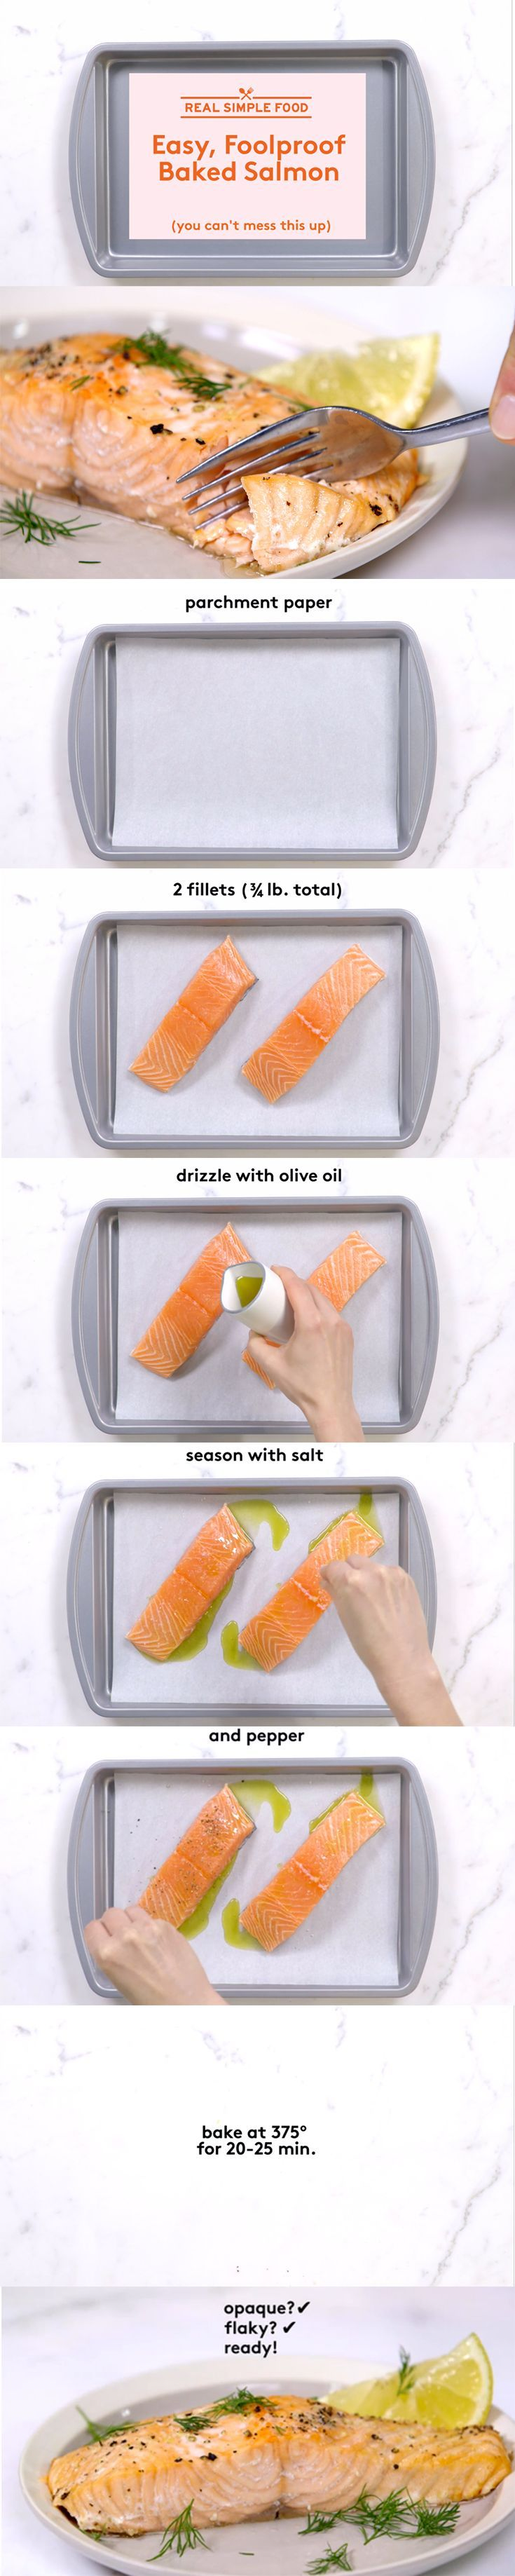 How to Cook Salmon | Salmon is packed full of omega-3 fatty acids (also found in flaxseed, chia seeds, and walnuts), making it a healthy weeknight dinner option for the whole family to enjoy. Intimidated by cooking the fish at home? Even beginners can master this basic technique, which results in perfectly flaky filets every time.